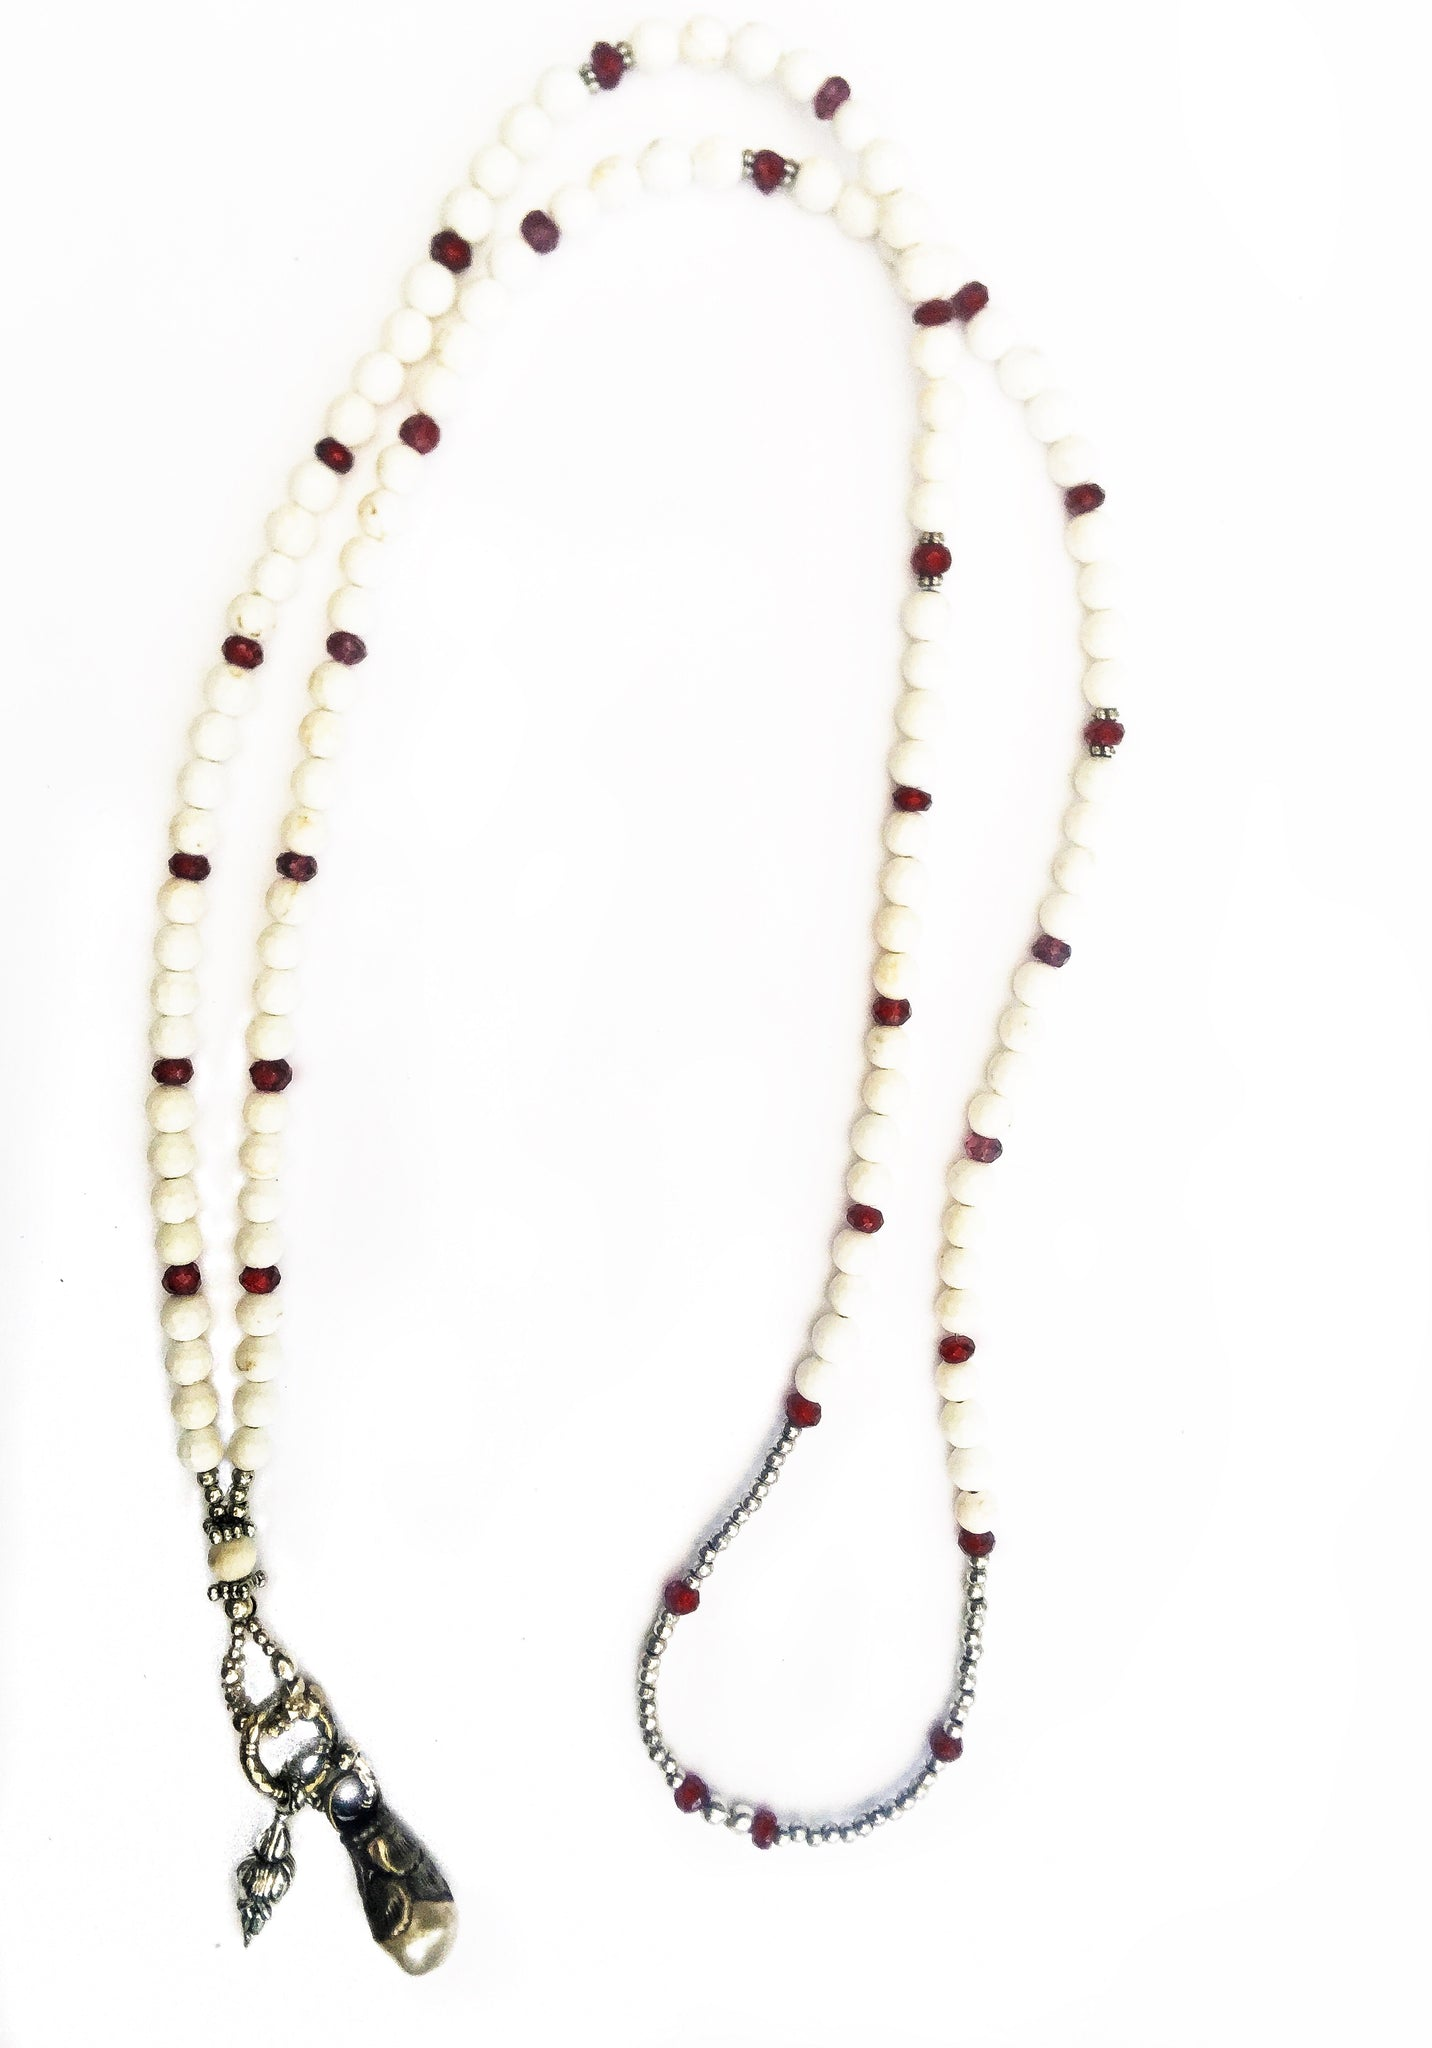 Garnet & Mala Serenity Necklace